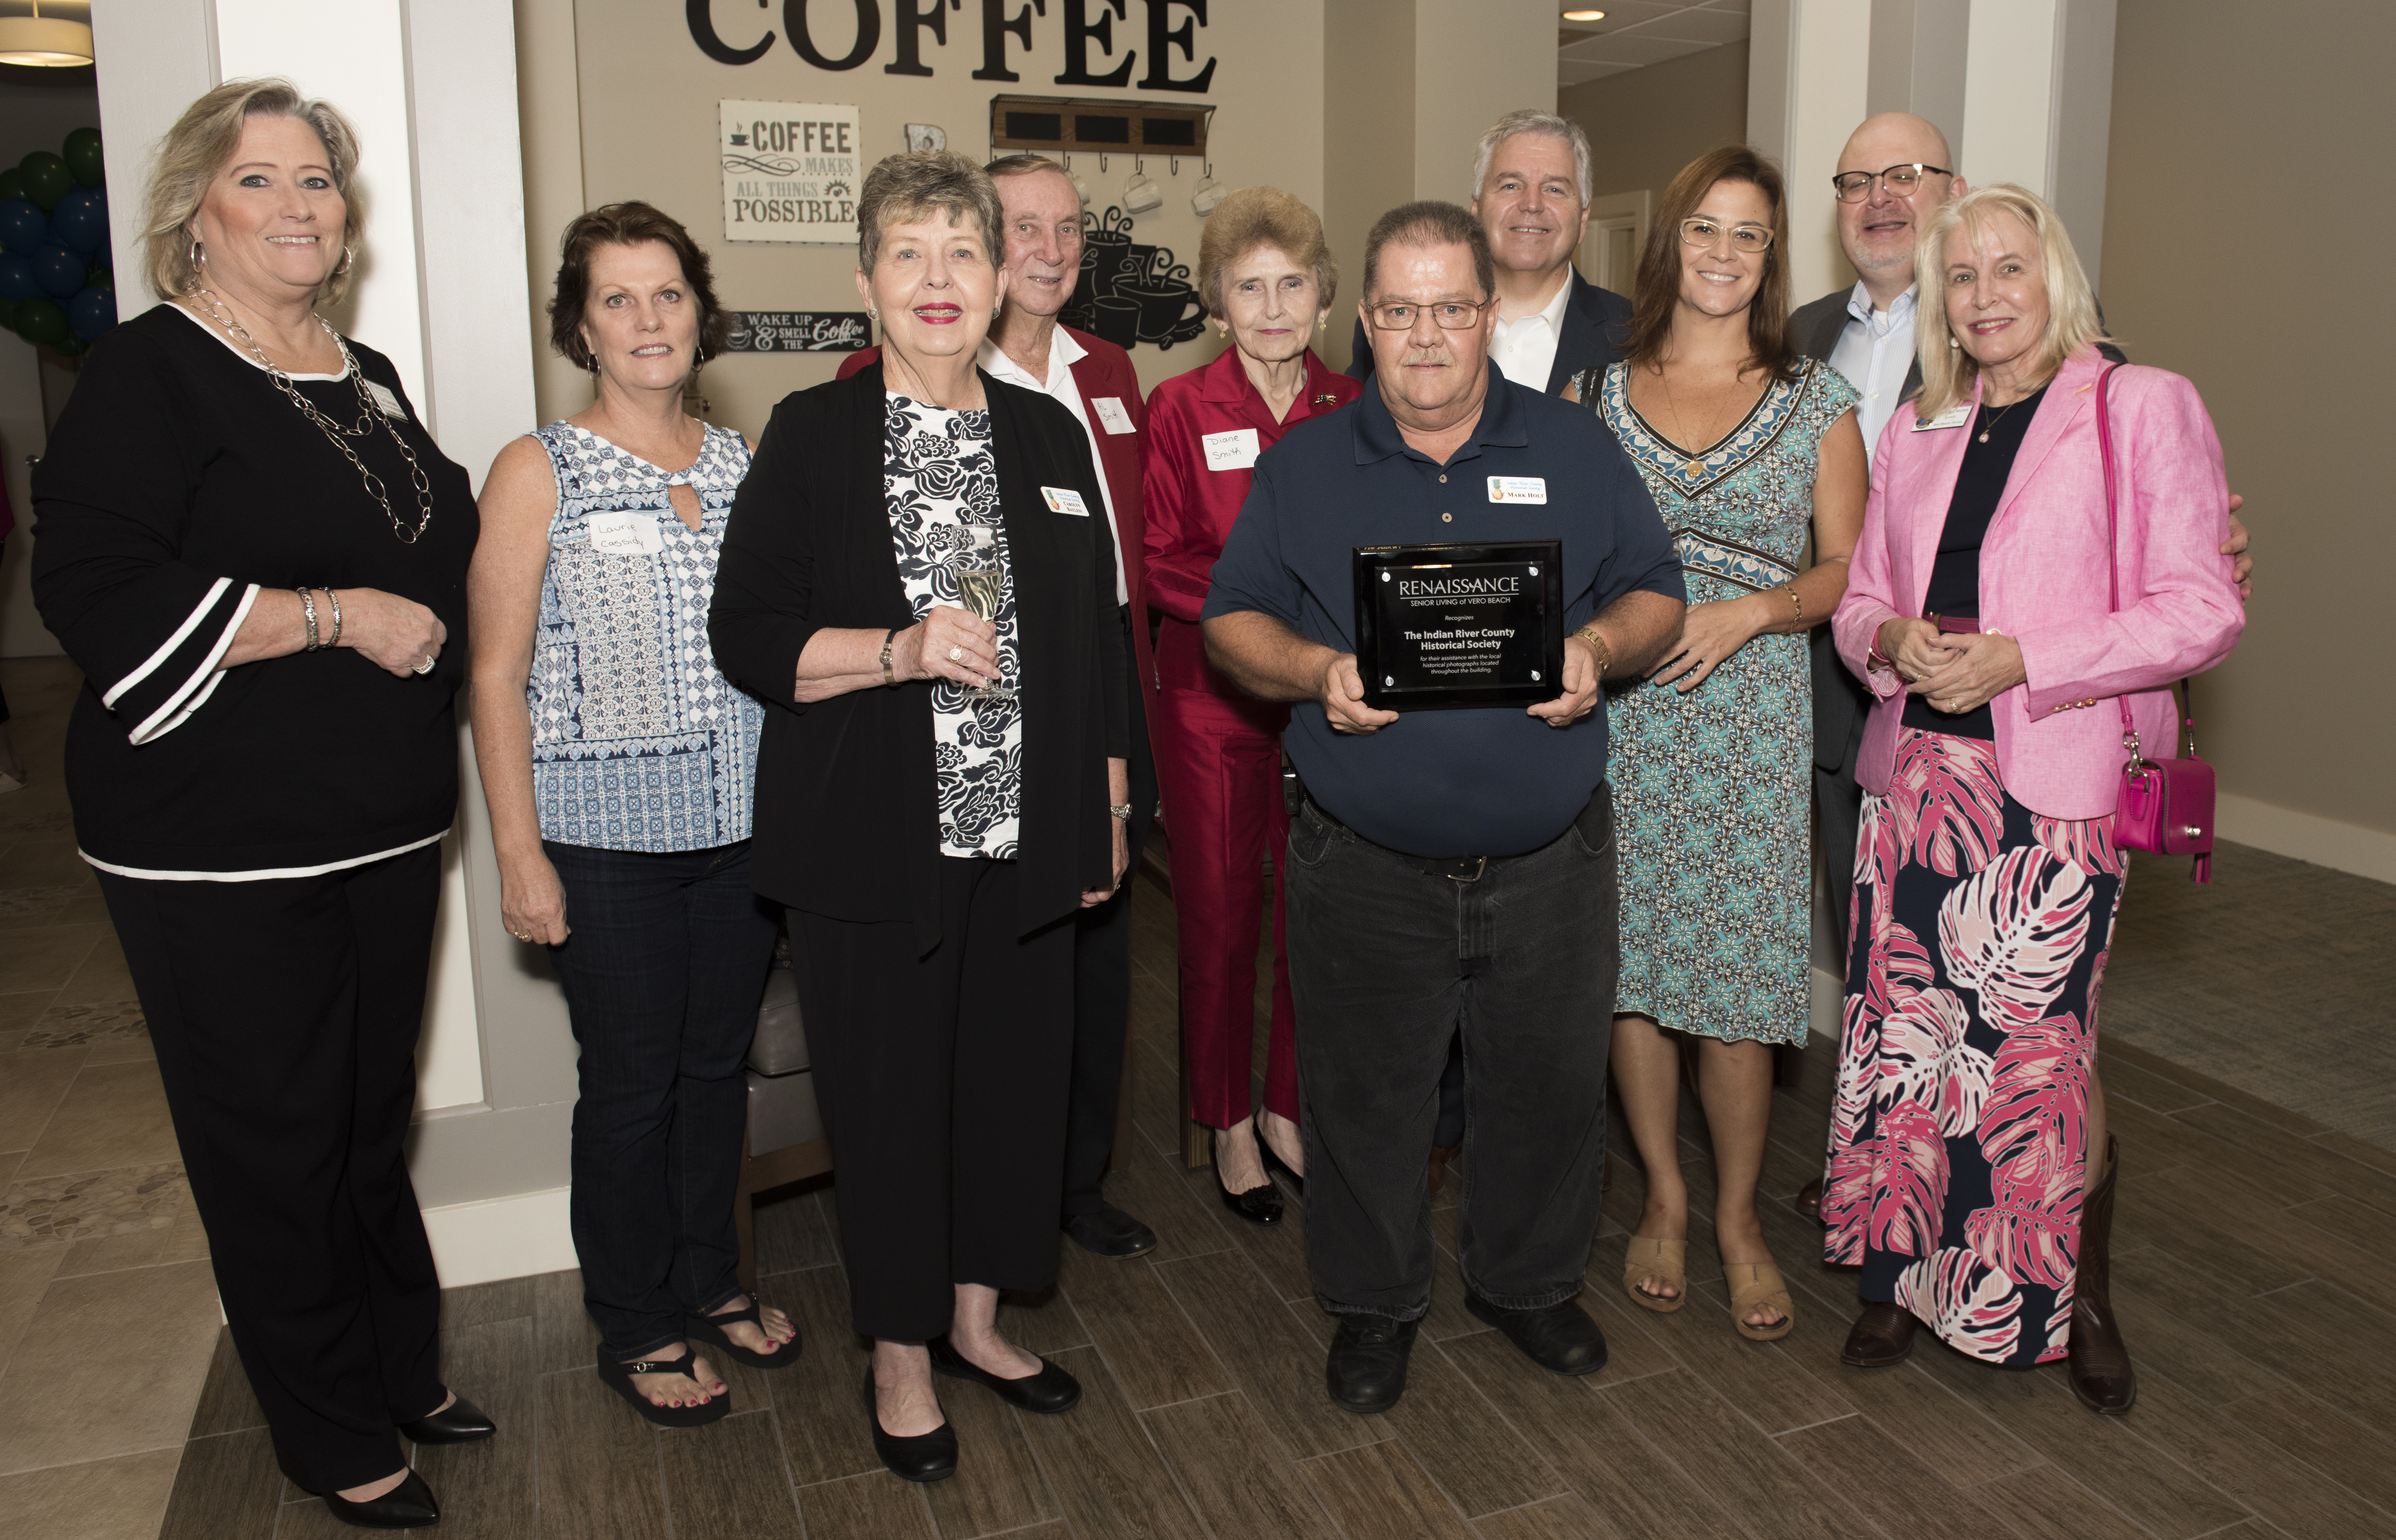 Renaissance Senior Living Partners with Indian River County's Historical  Society to Bring Old Vero Beach to Life Through Historical Photos - Renaissance  Senior Living - Vero Beach, FL (news)